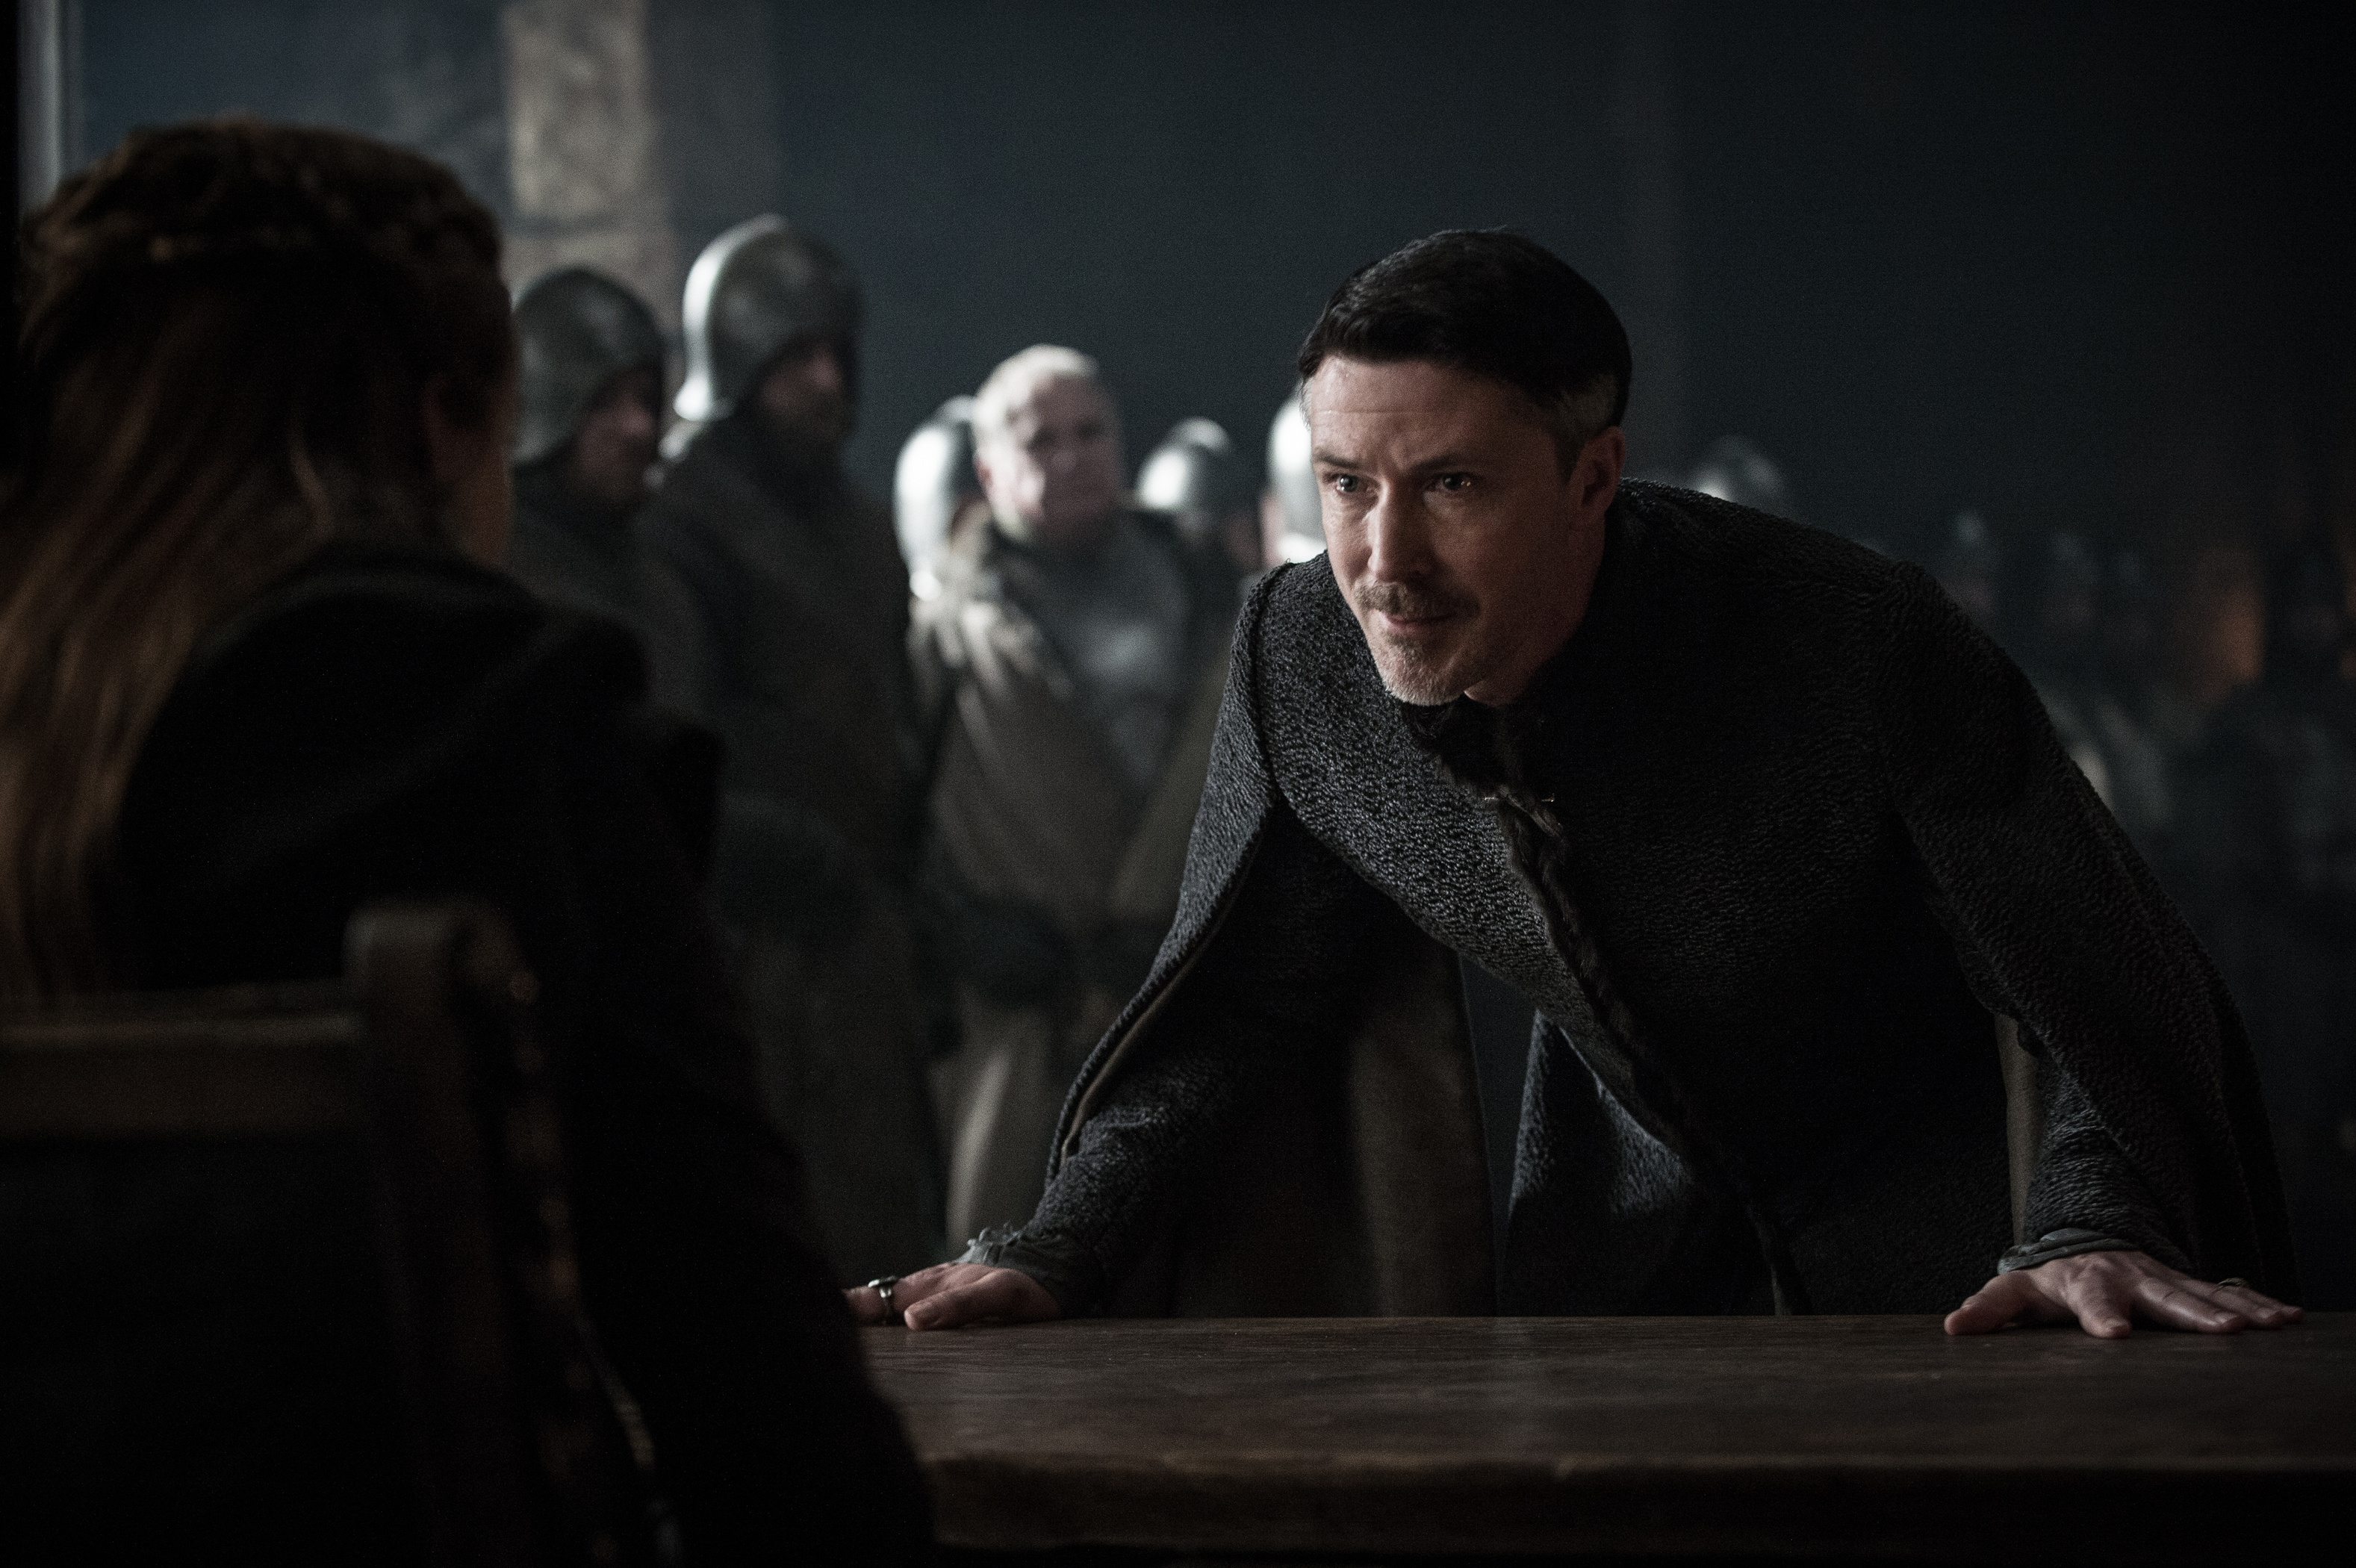 7 Rules Of Life Quote The Best Quote From Last Night's Insane Game Of Thrones Finale